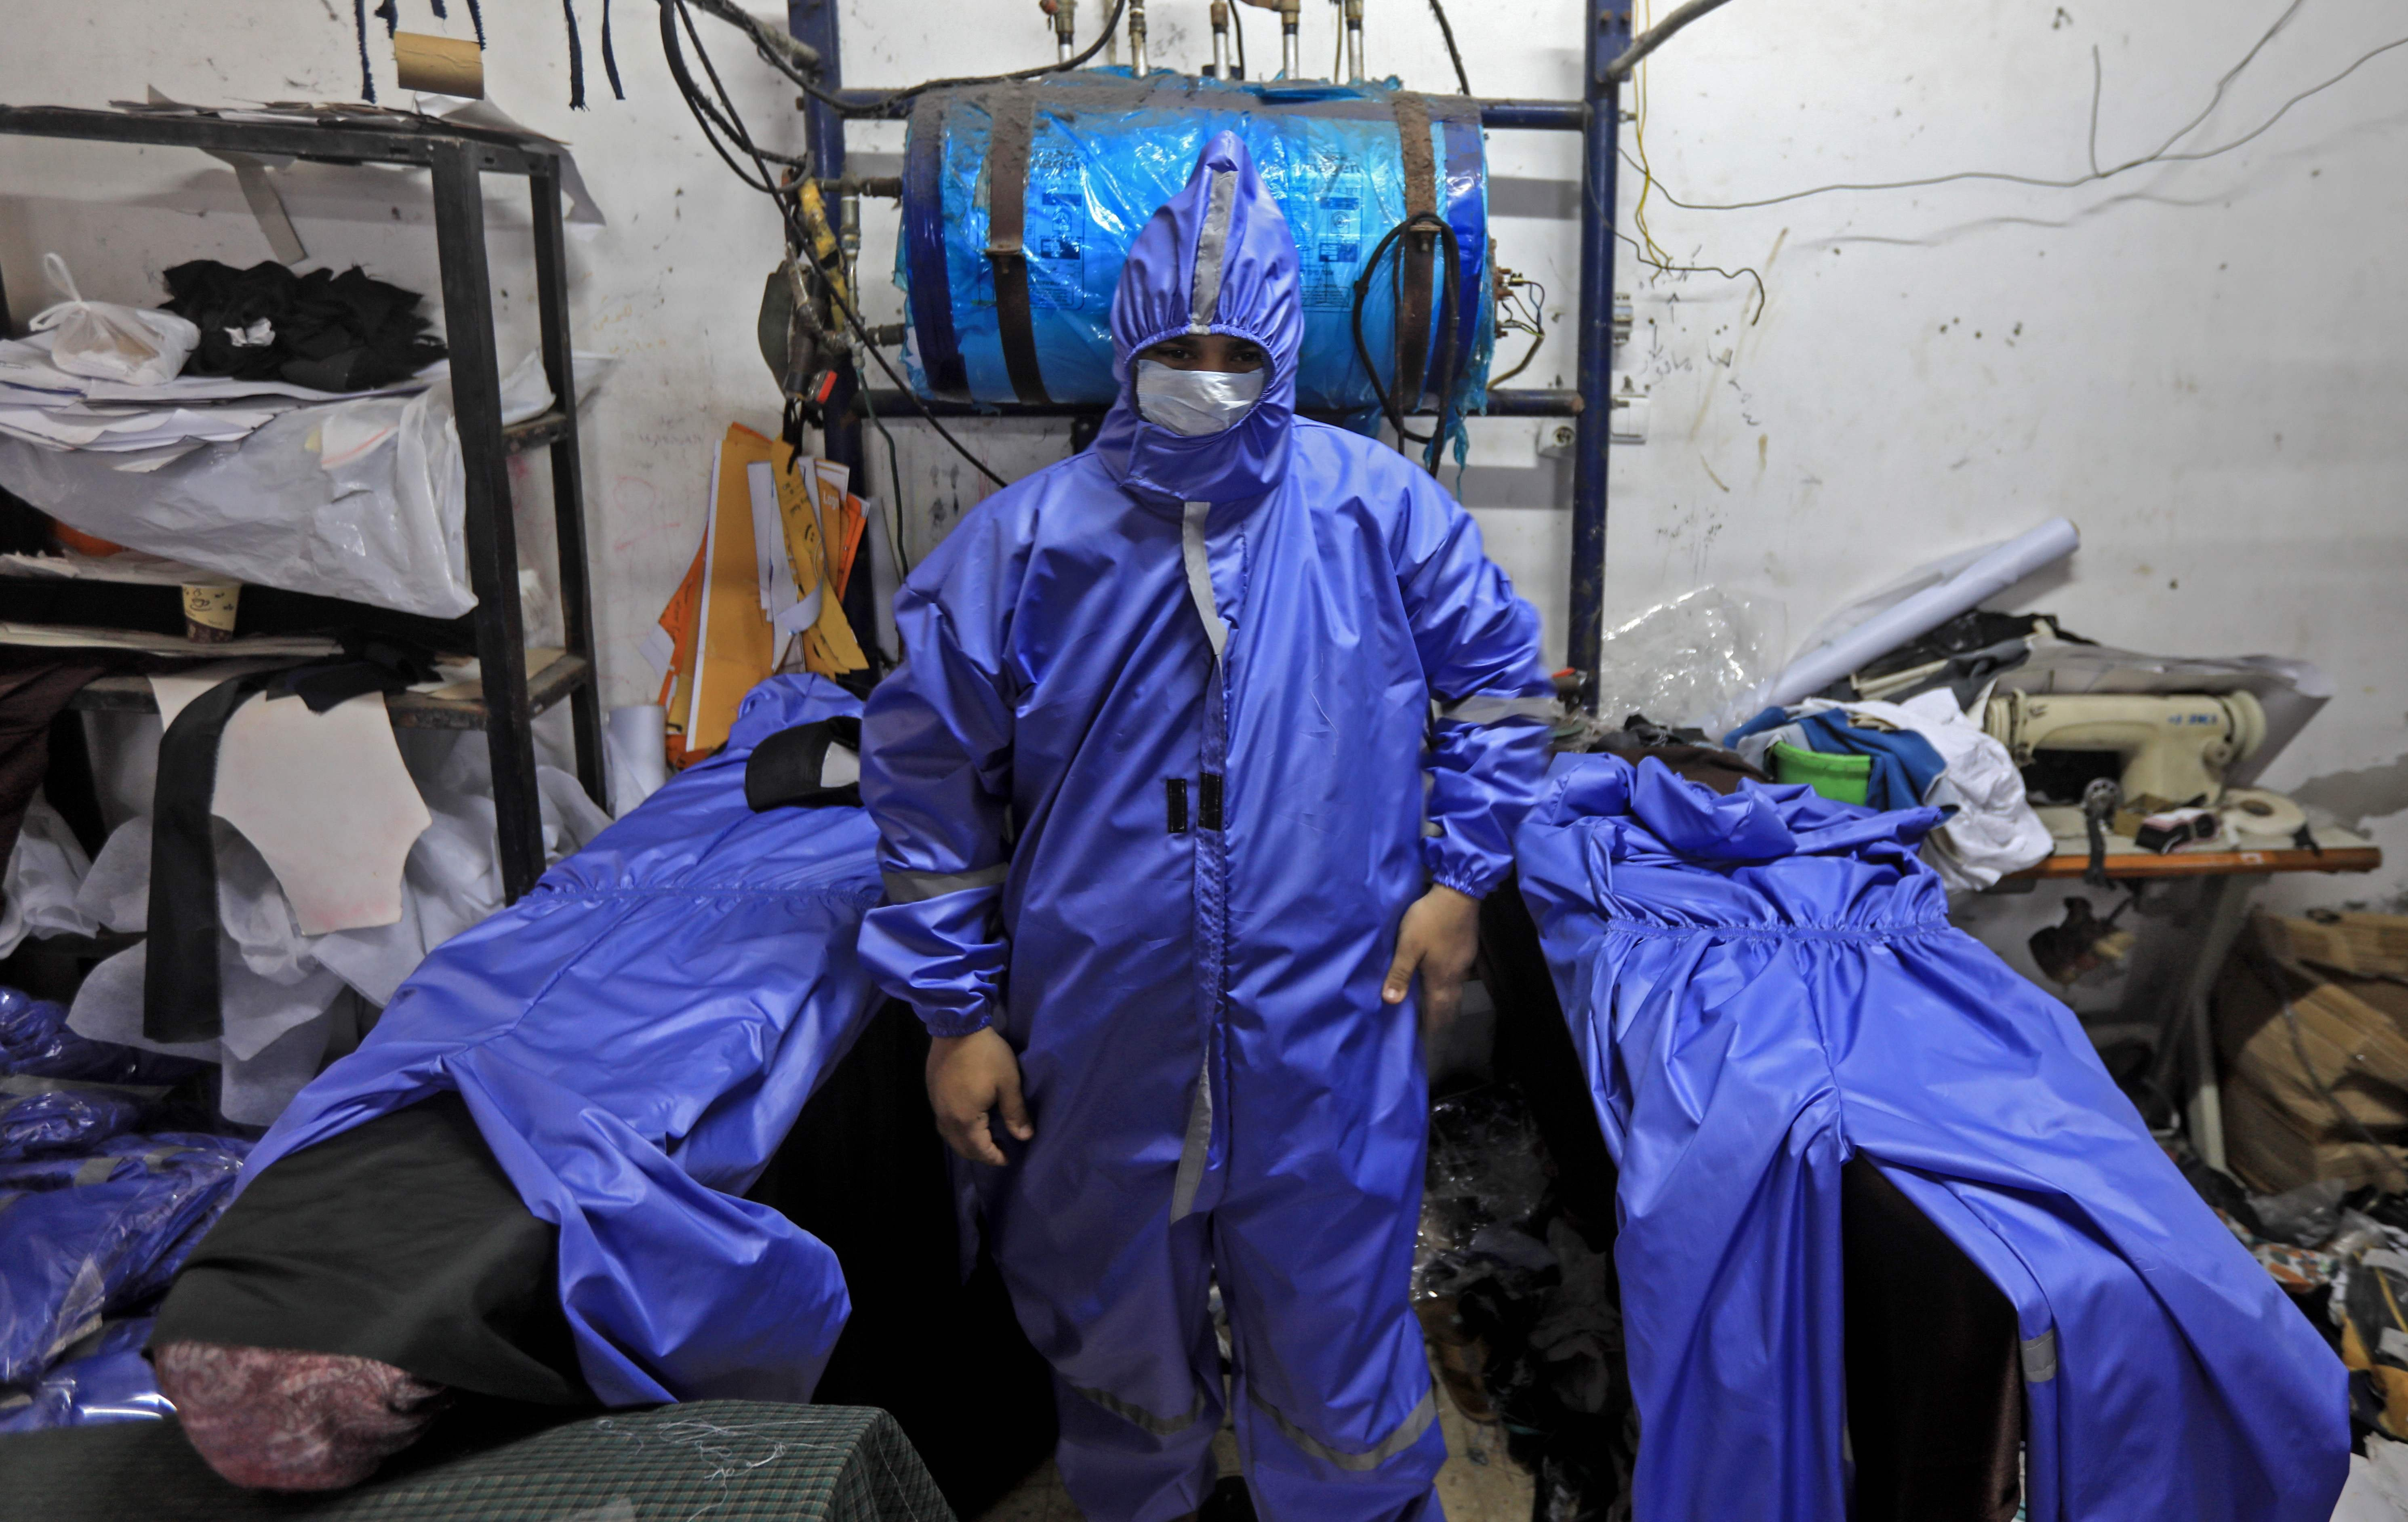 Palestinian workers manufacture protective coverall suits and masks at a workshop in Gaza City on Monday, March 30, 2020, amid the COVID-19 pandemic. (AFP Photo)